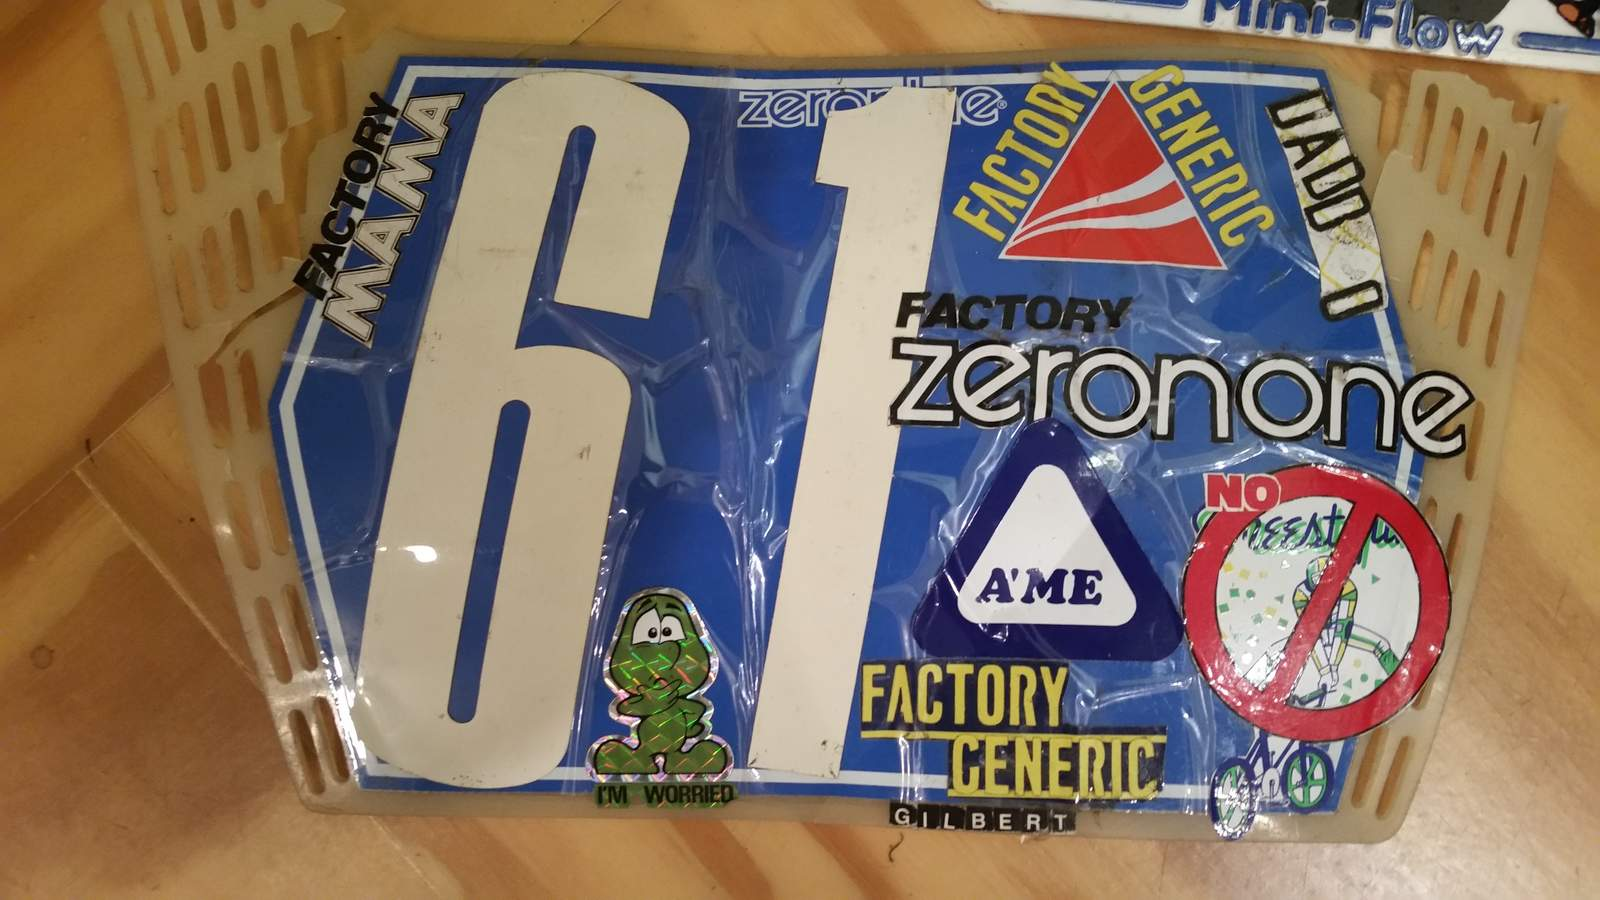 http://uploads.bmxmuseum.com/user-images/16325/zeronine-61-blue5acd749dd8.jpg